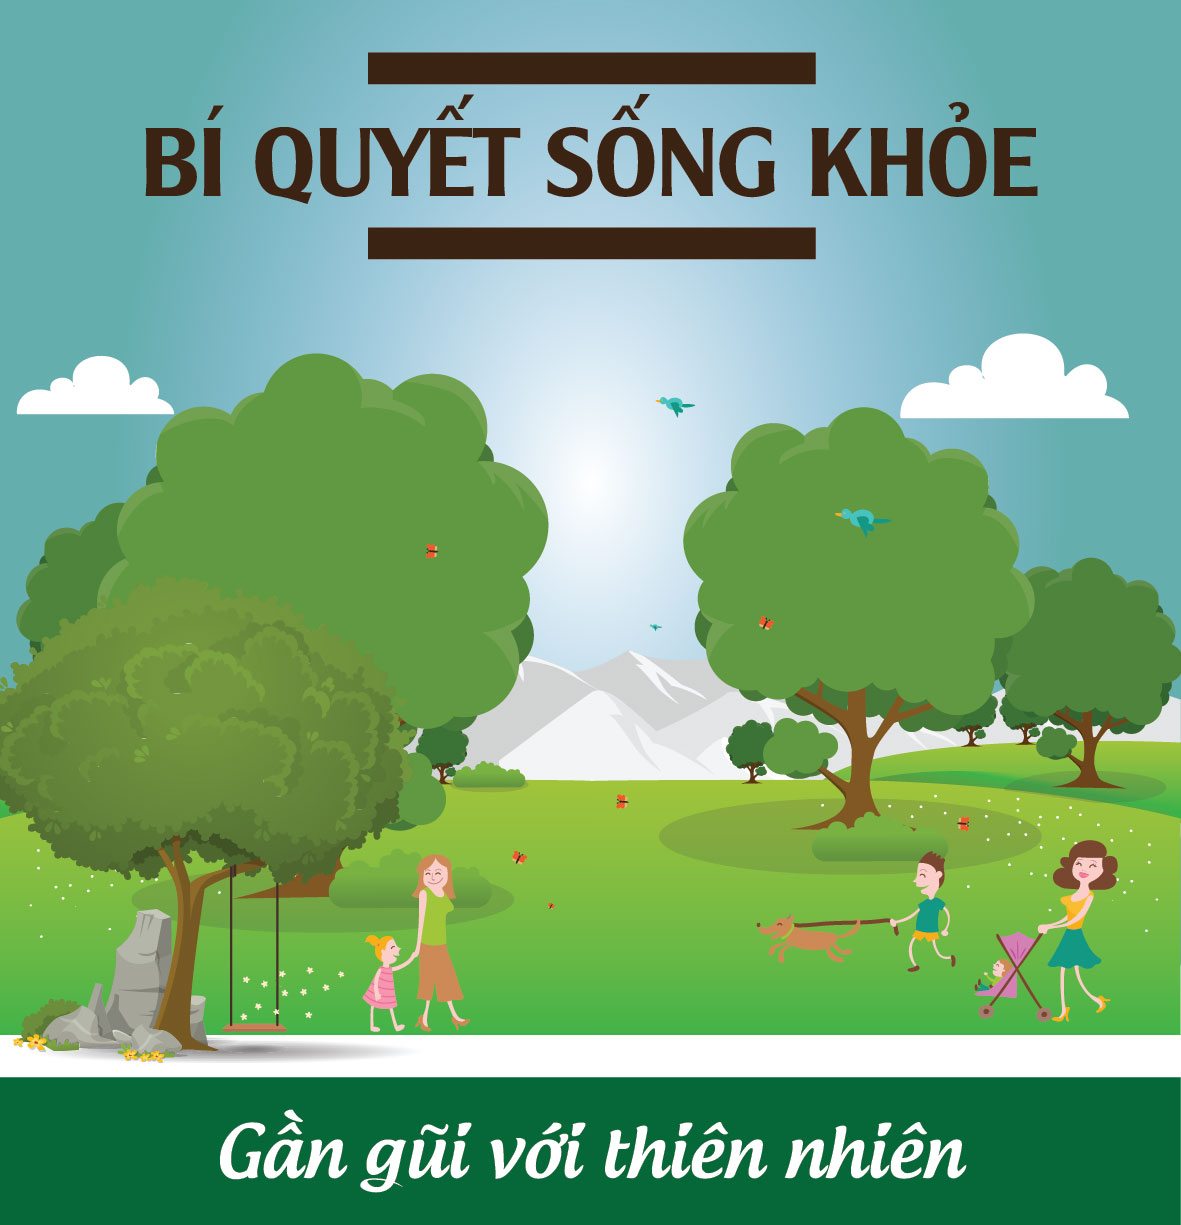 [infographic] bi quyet song khoe cua cu ba cao tuoi nhat the gioi hinh anh 2